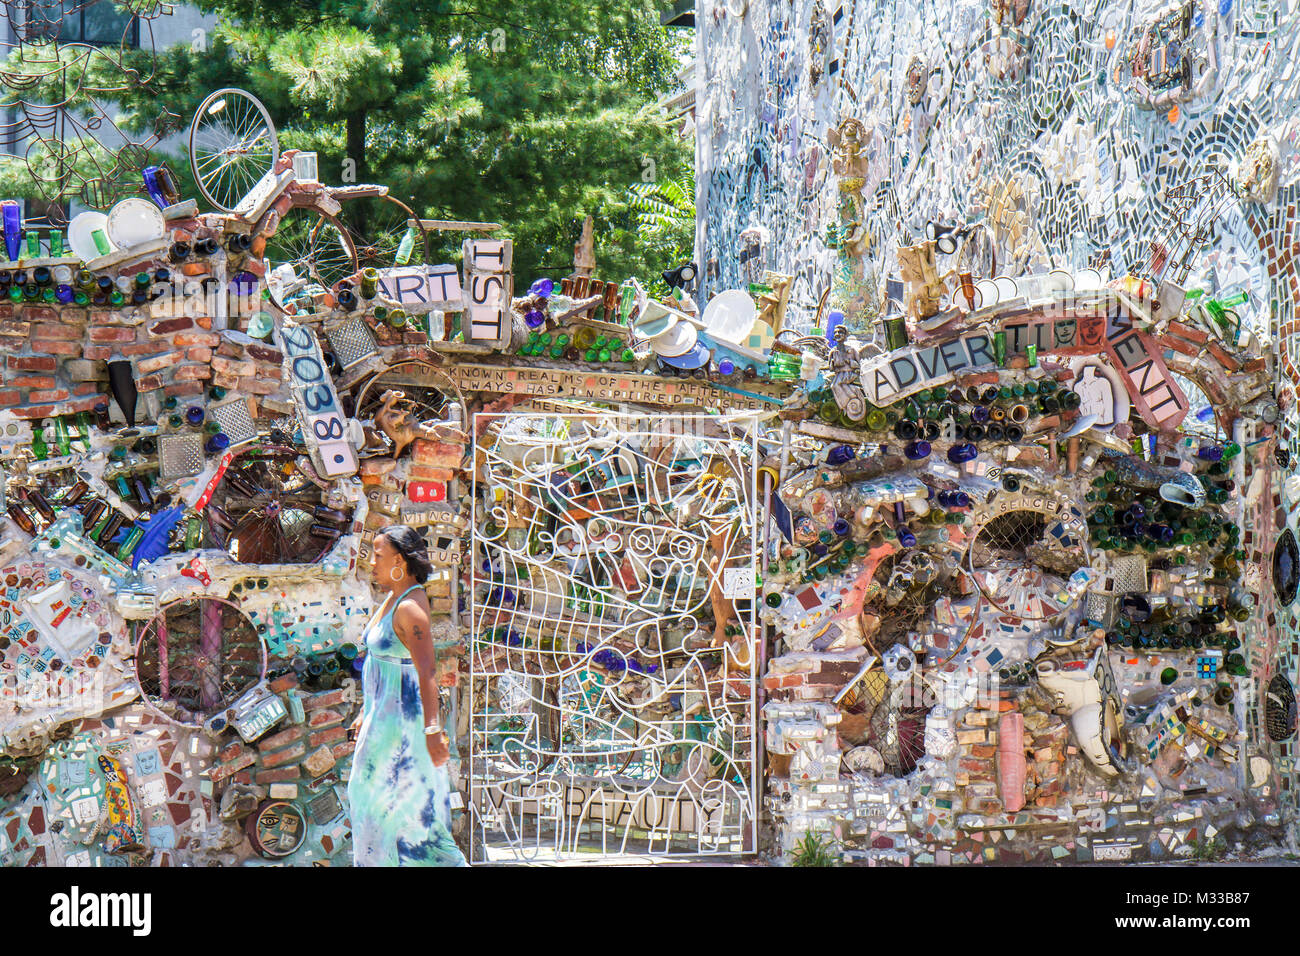 Philadelphia Pennsylvania South Philly South Street Magic Gardens